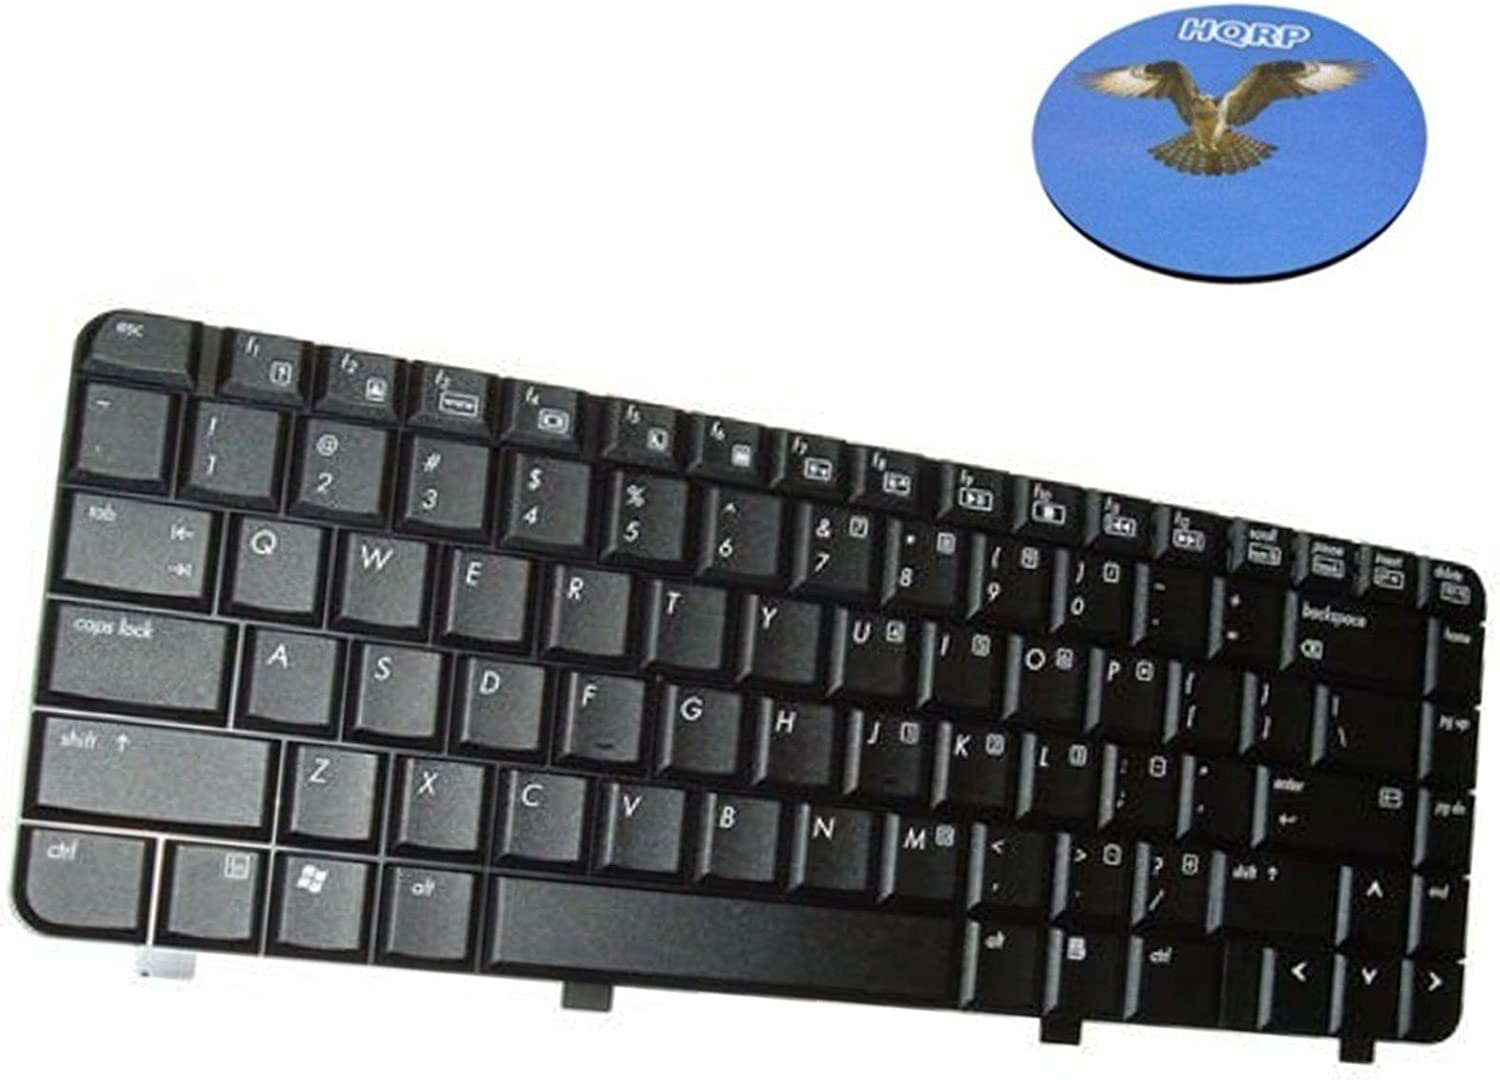 HQRP Laptop Keyboard for HP Compaq V3000 / DV2000 / DV2100 Notebook Replacement plus HQRP Coaster